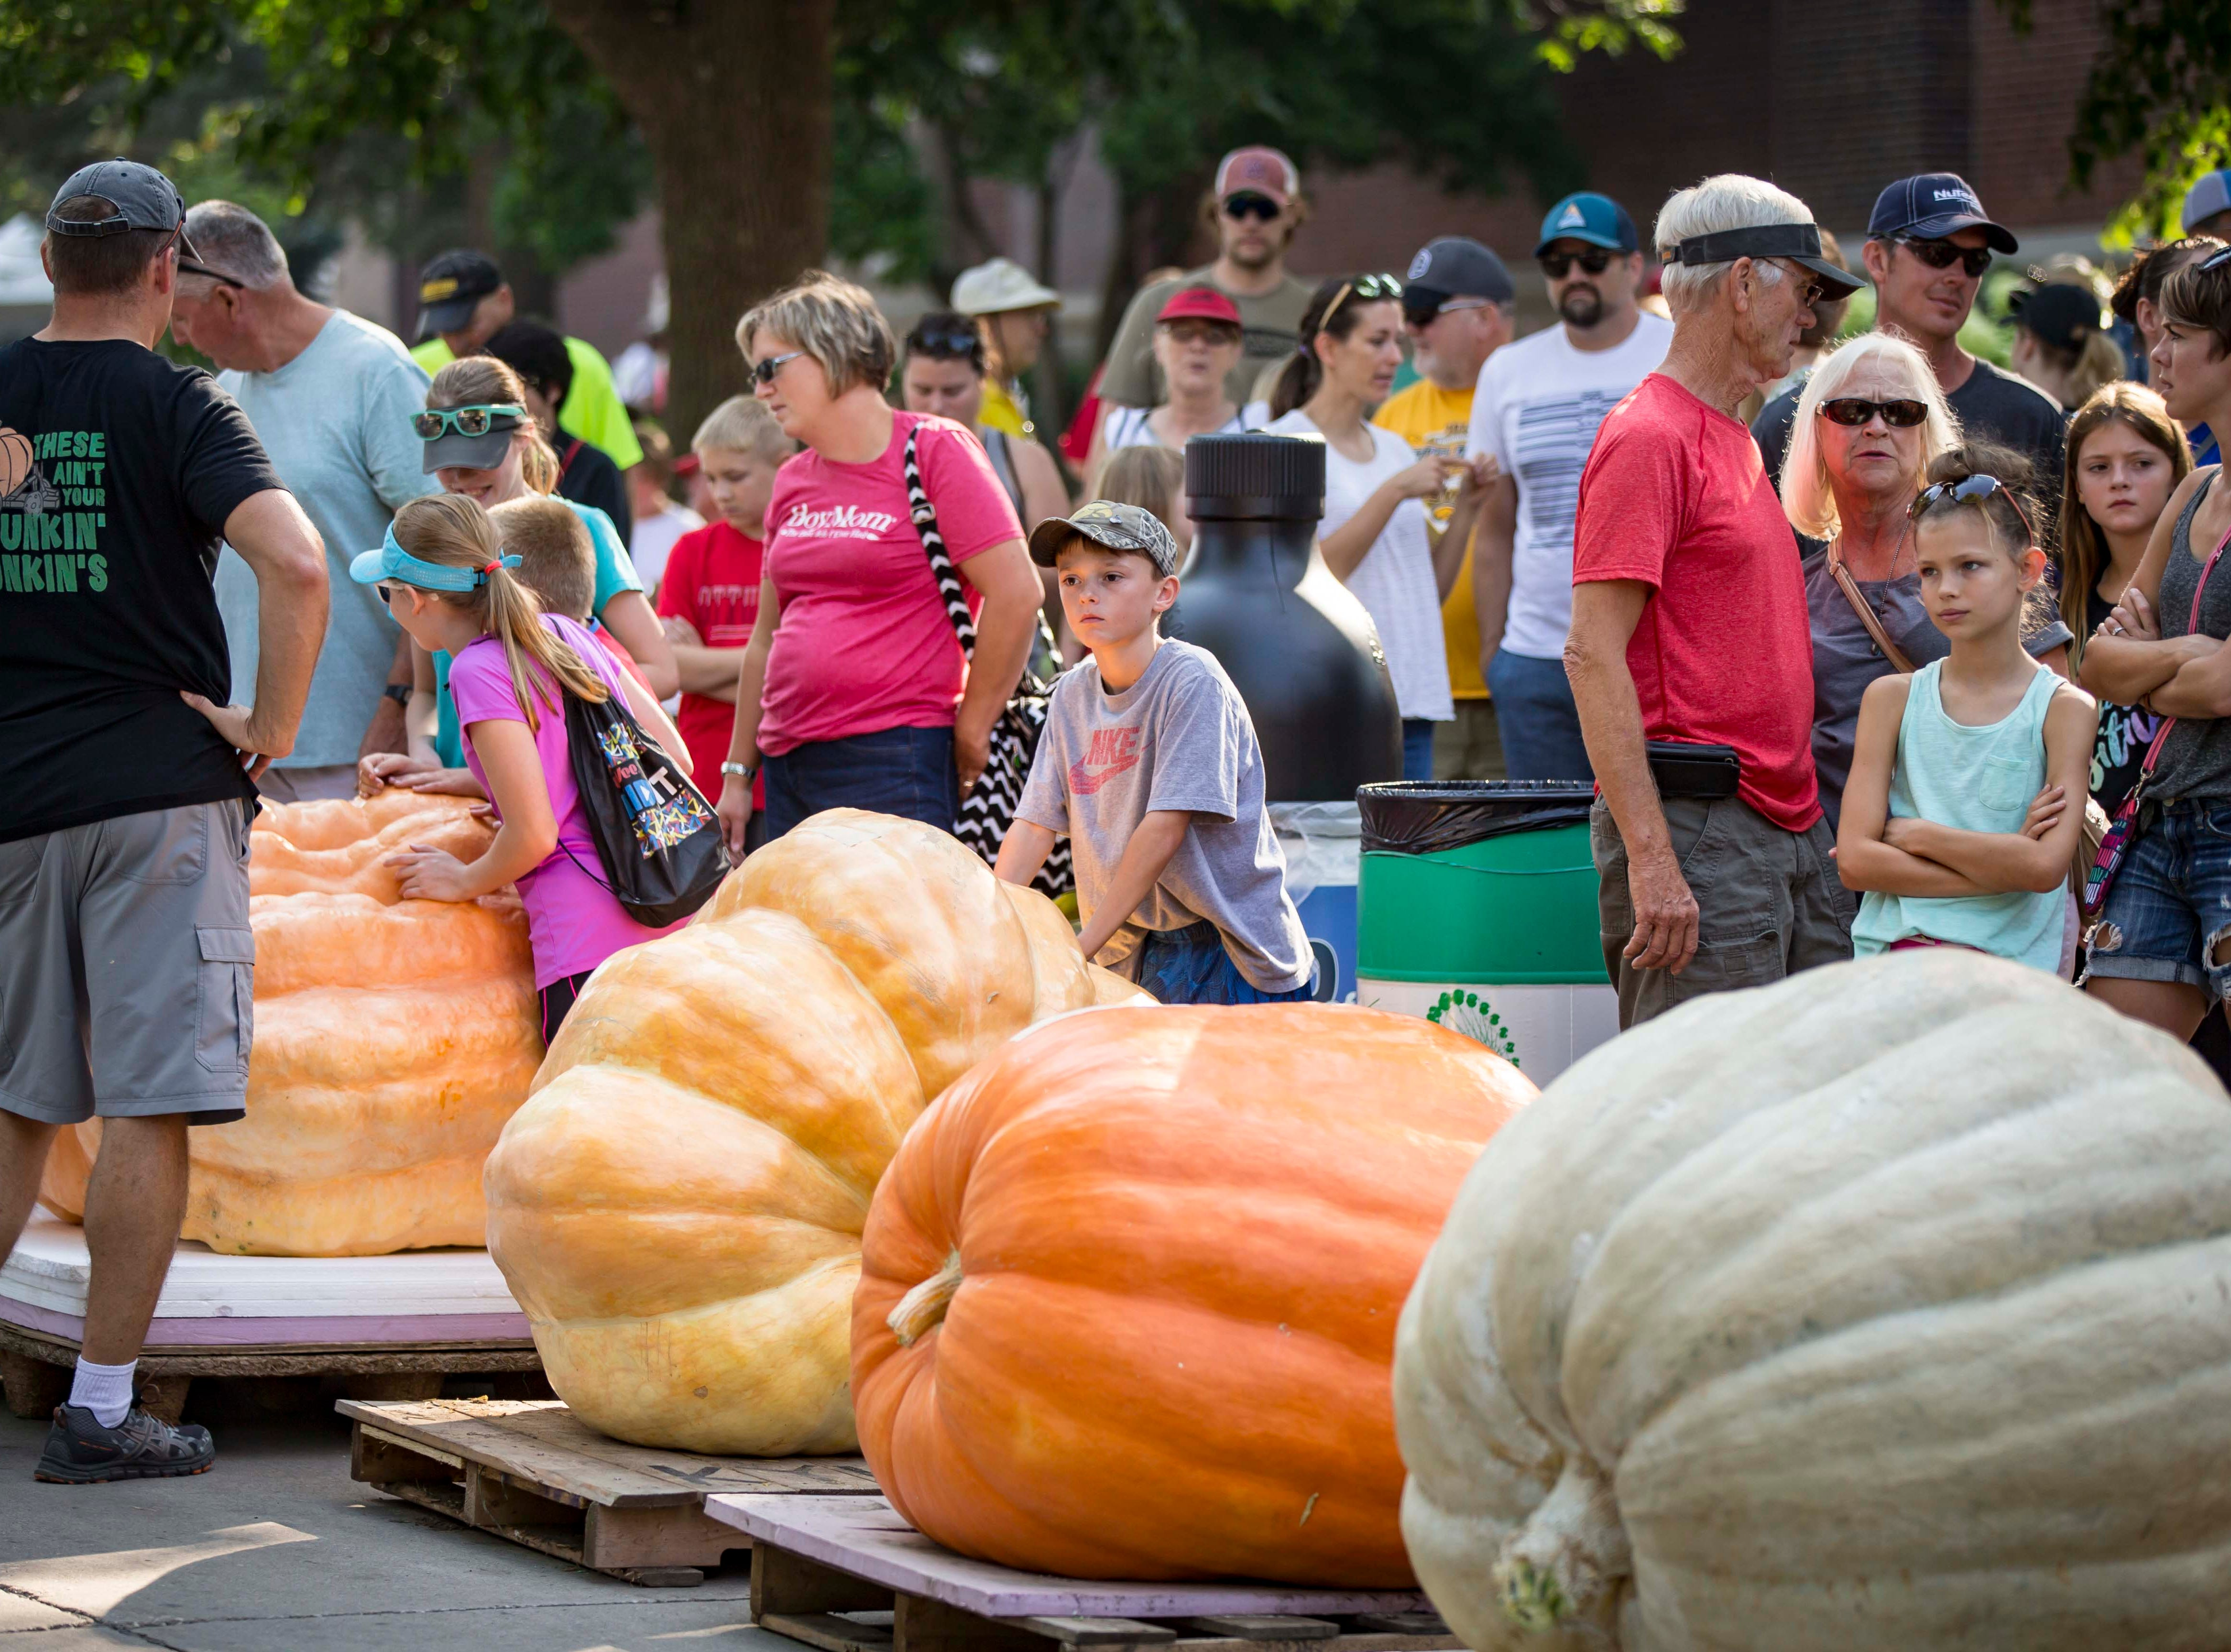 Contestants and their families wait for the scales during the Big Pumpkin Weigh-In at the Iowa State Fair Friday, Aug. 10, 2018, in Des Moines, Iowa.